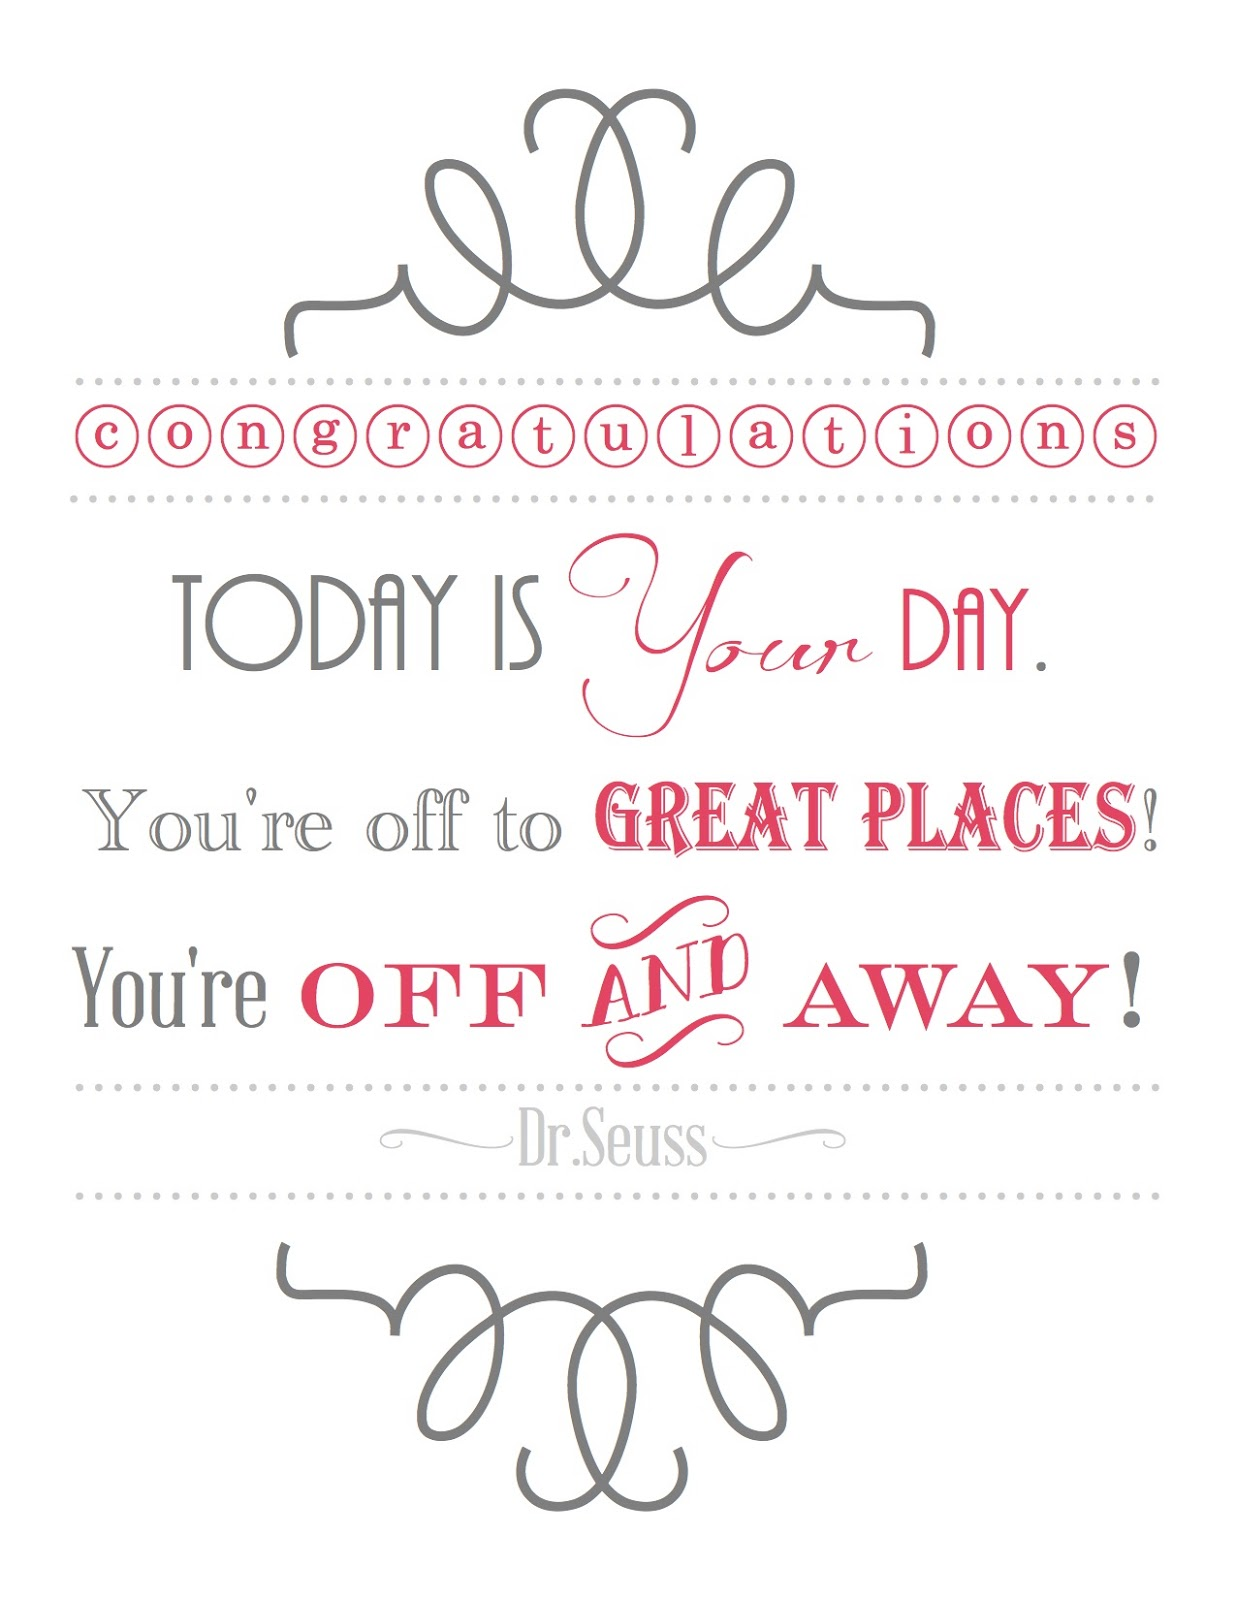 Graduation Quotes Tumbler For Friends Funny Dr Seuss 2014 And